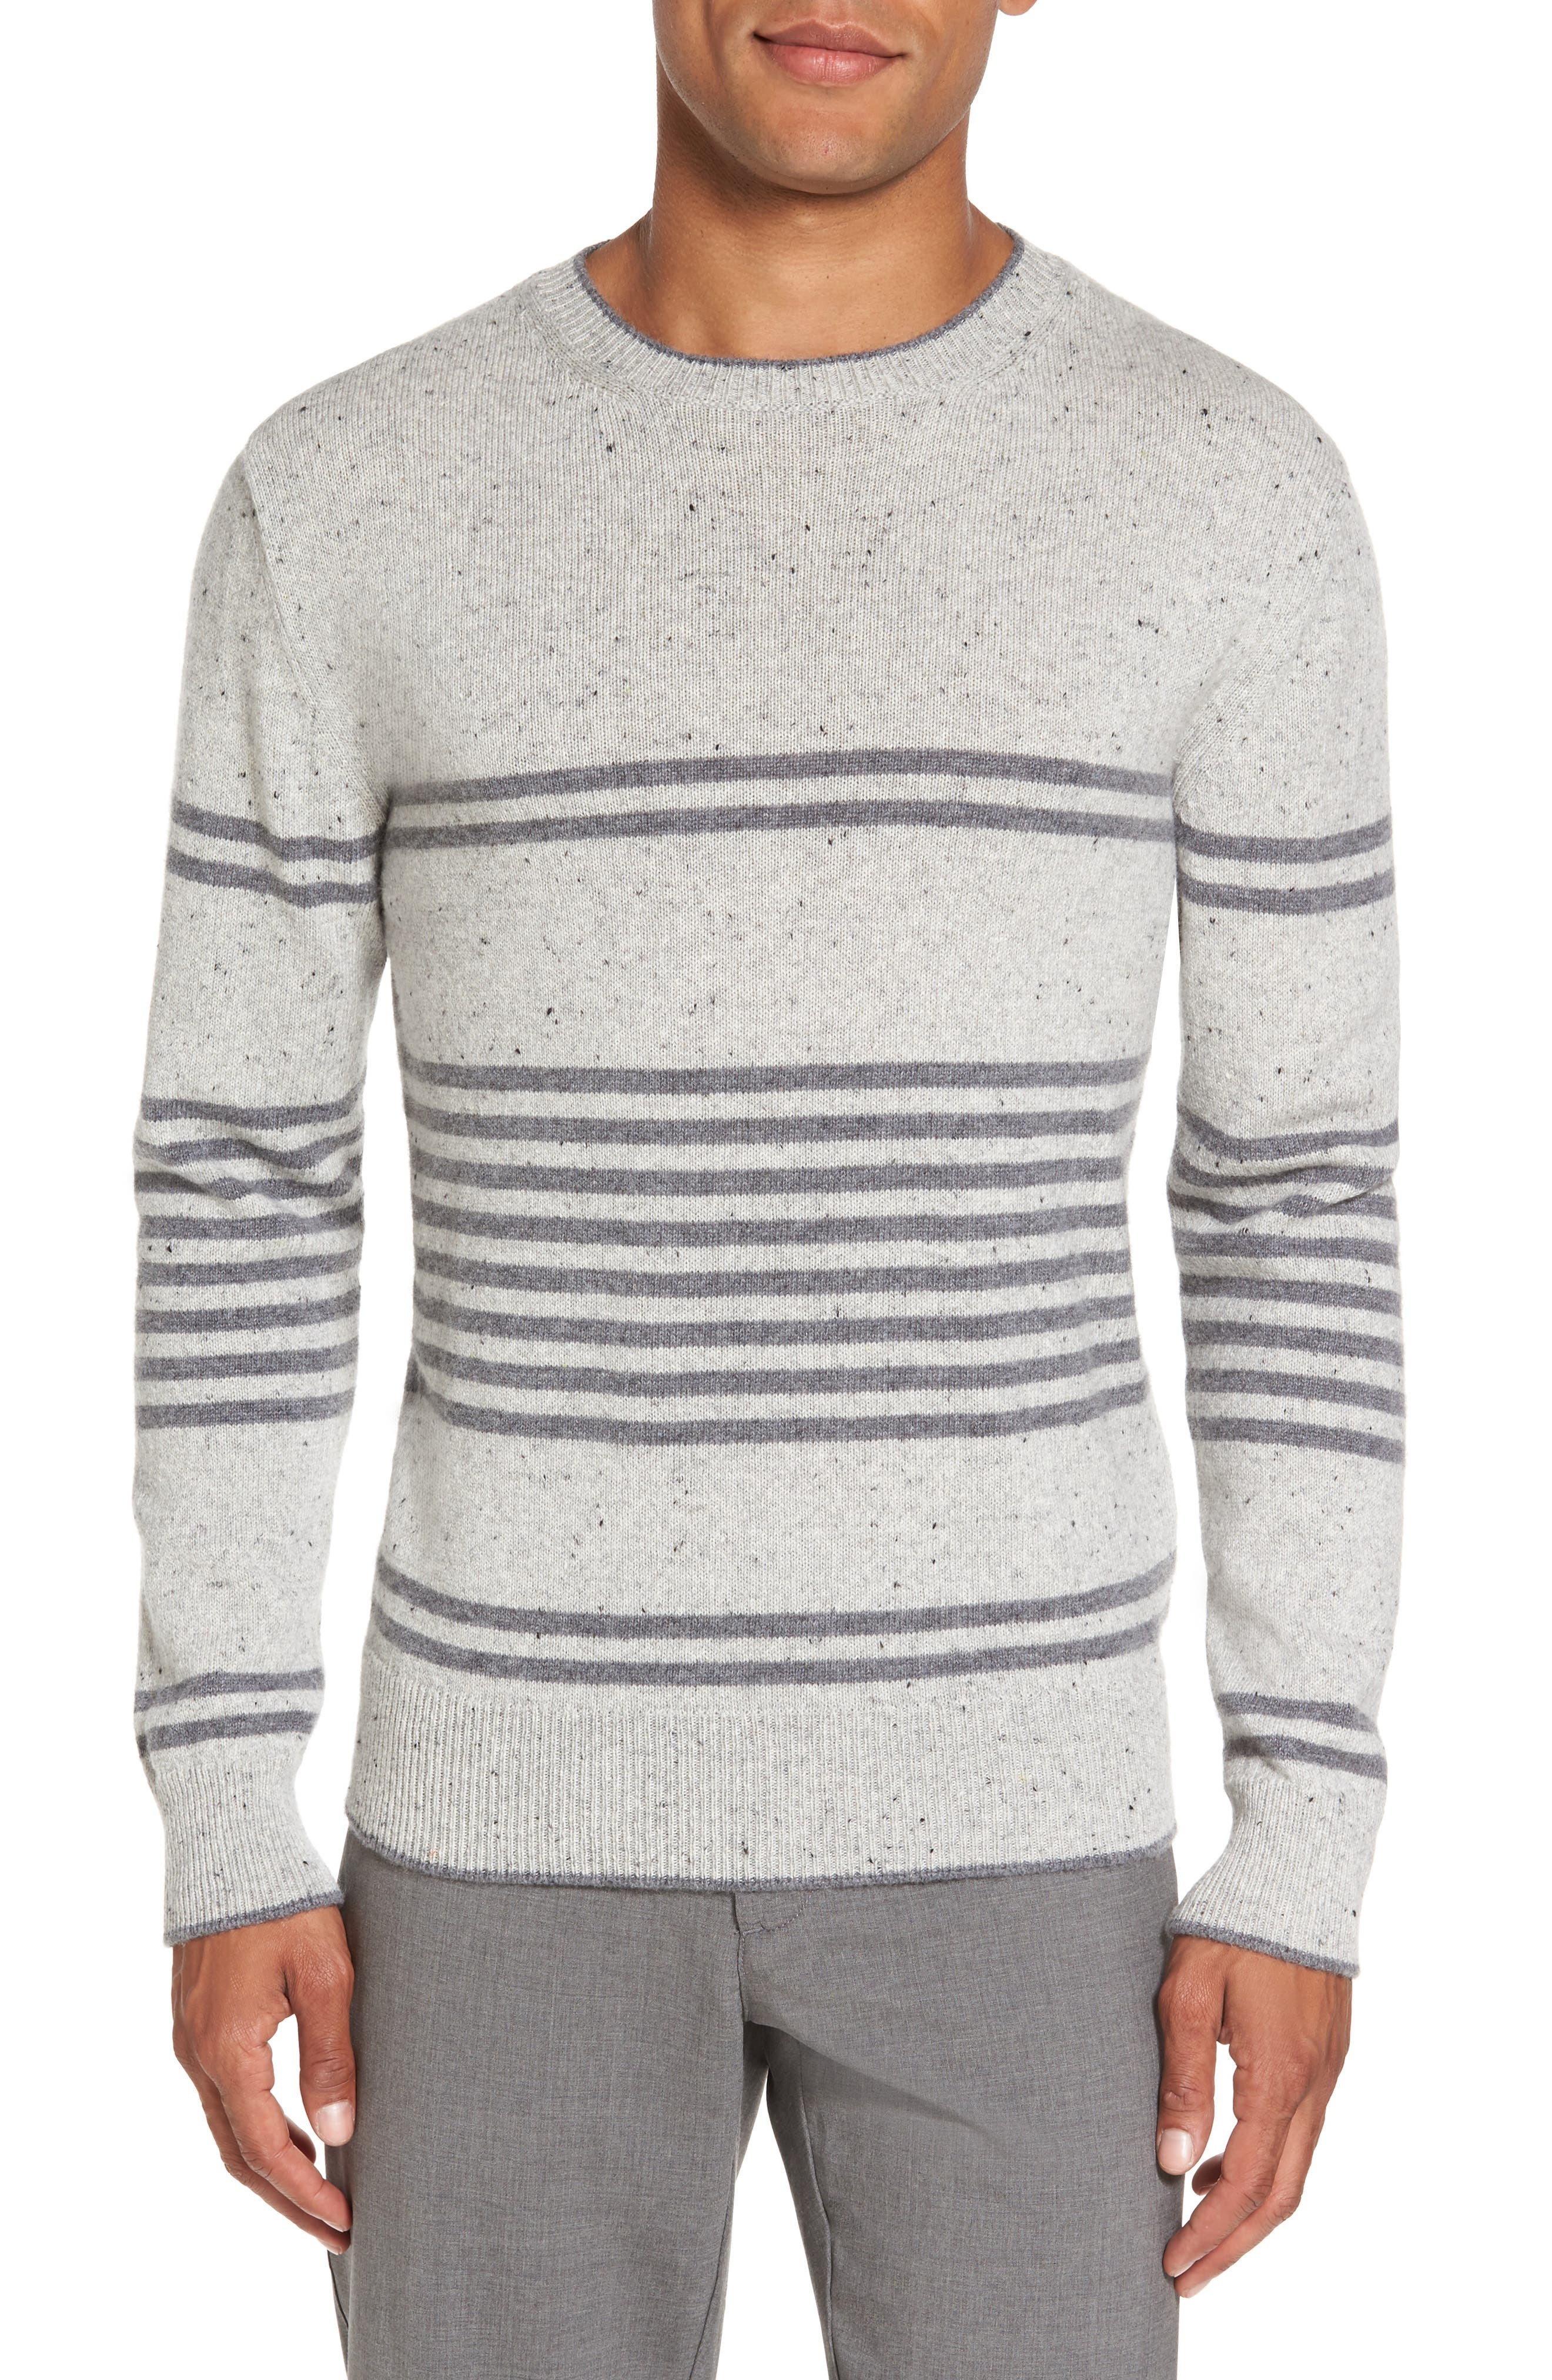 Donegal Stripe Cashmere Sweater,                             Main thumbnail 1, color,                             020